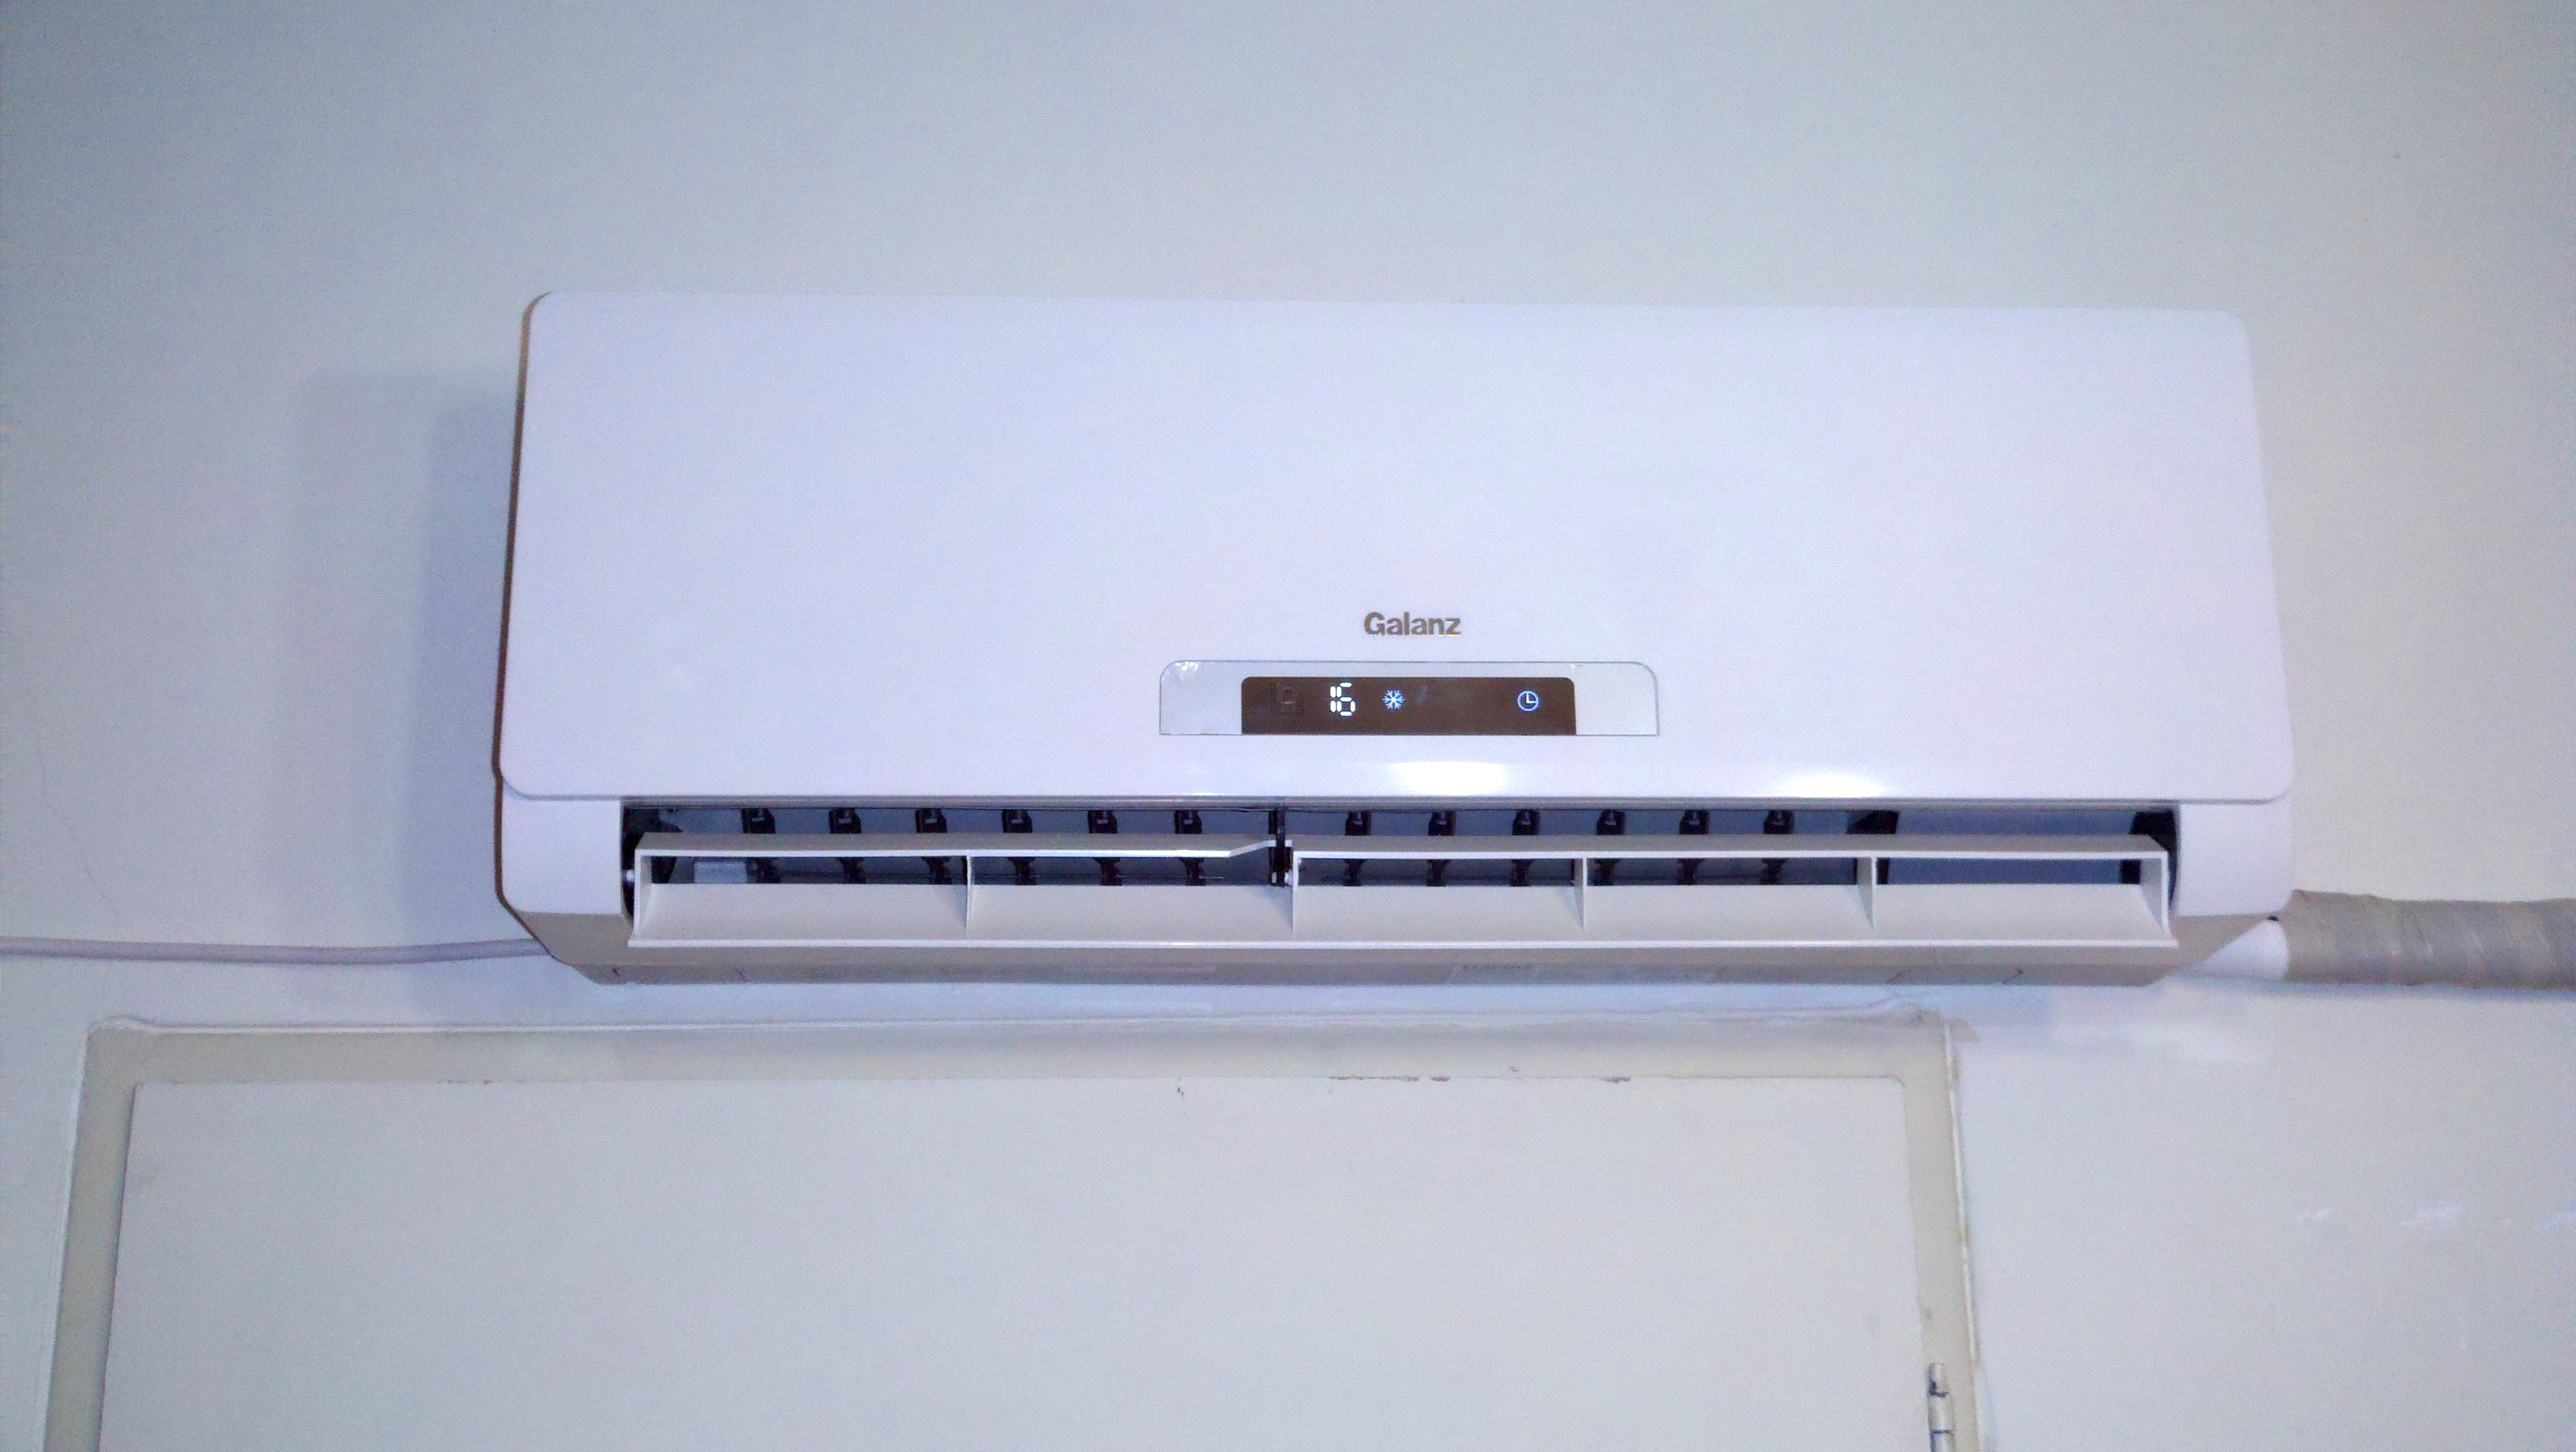 Over The Door Air Conditioning Units likewise Air Conditioning System  #3F476D